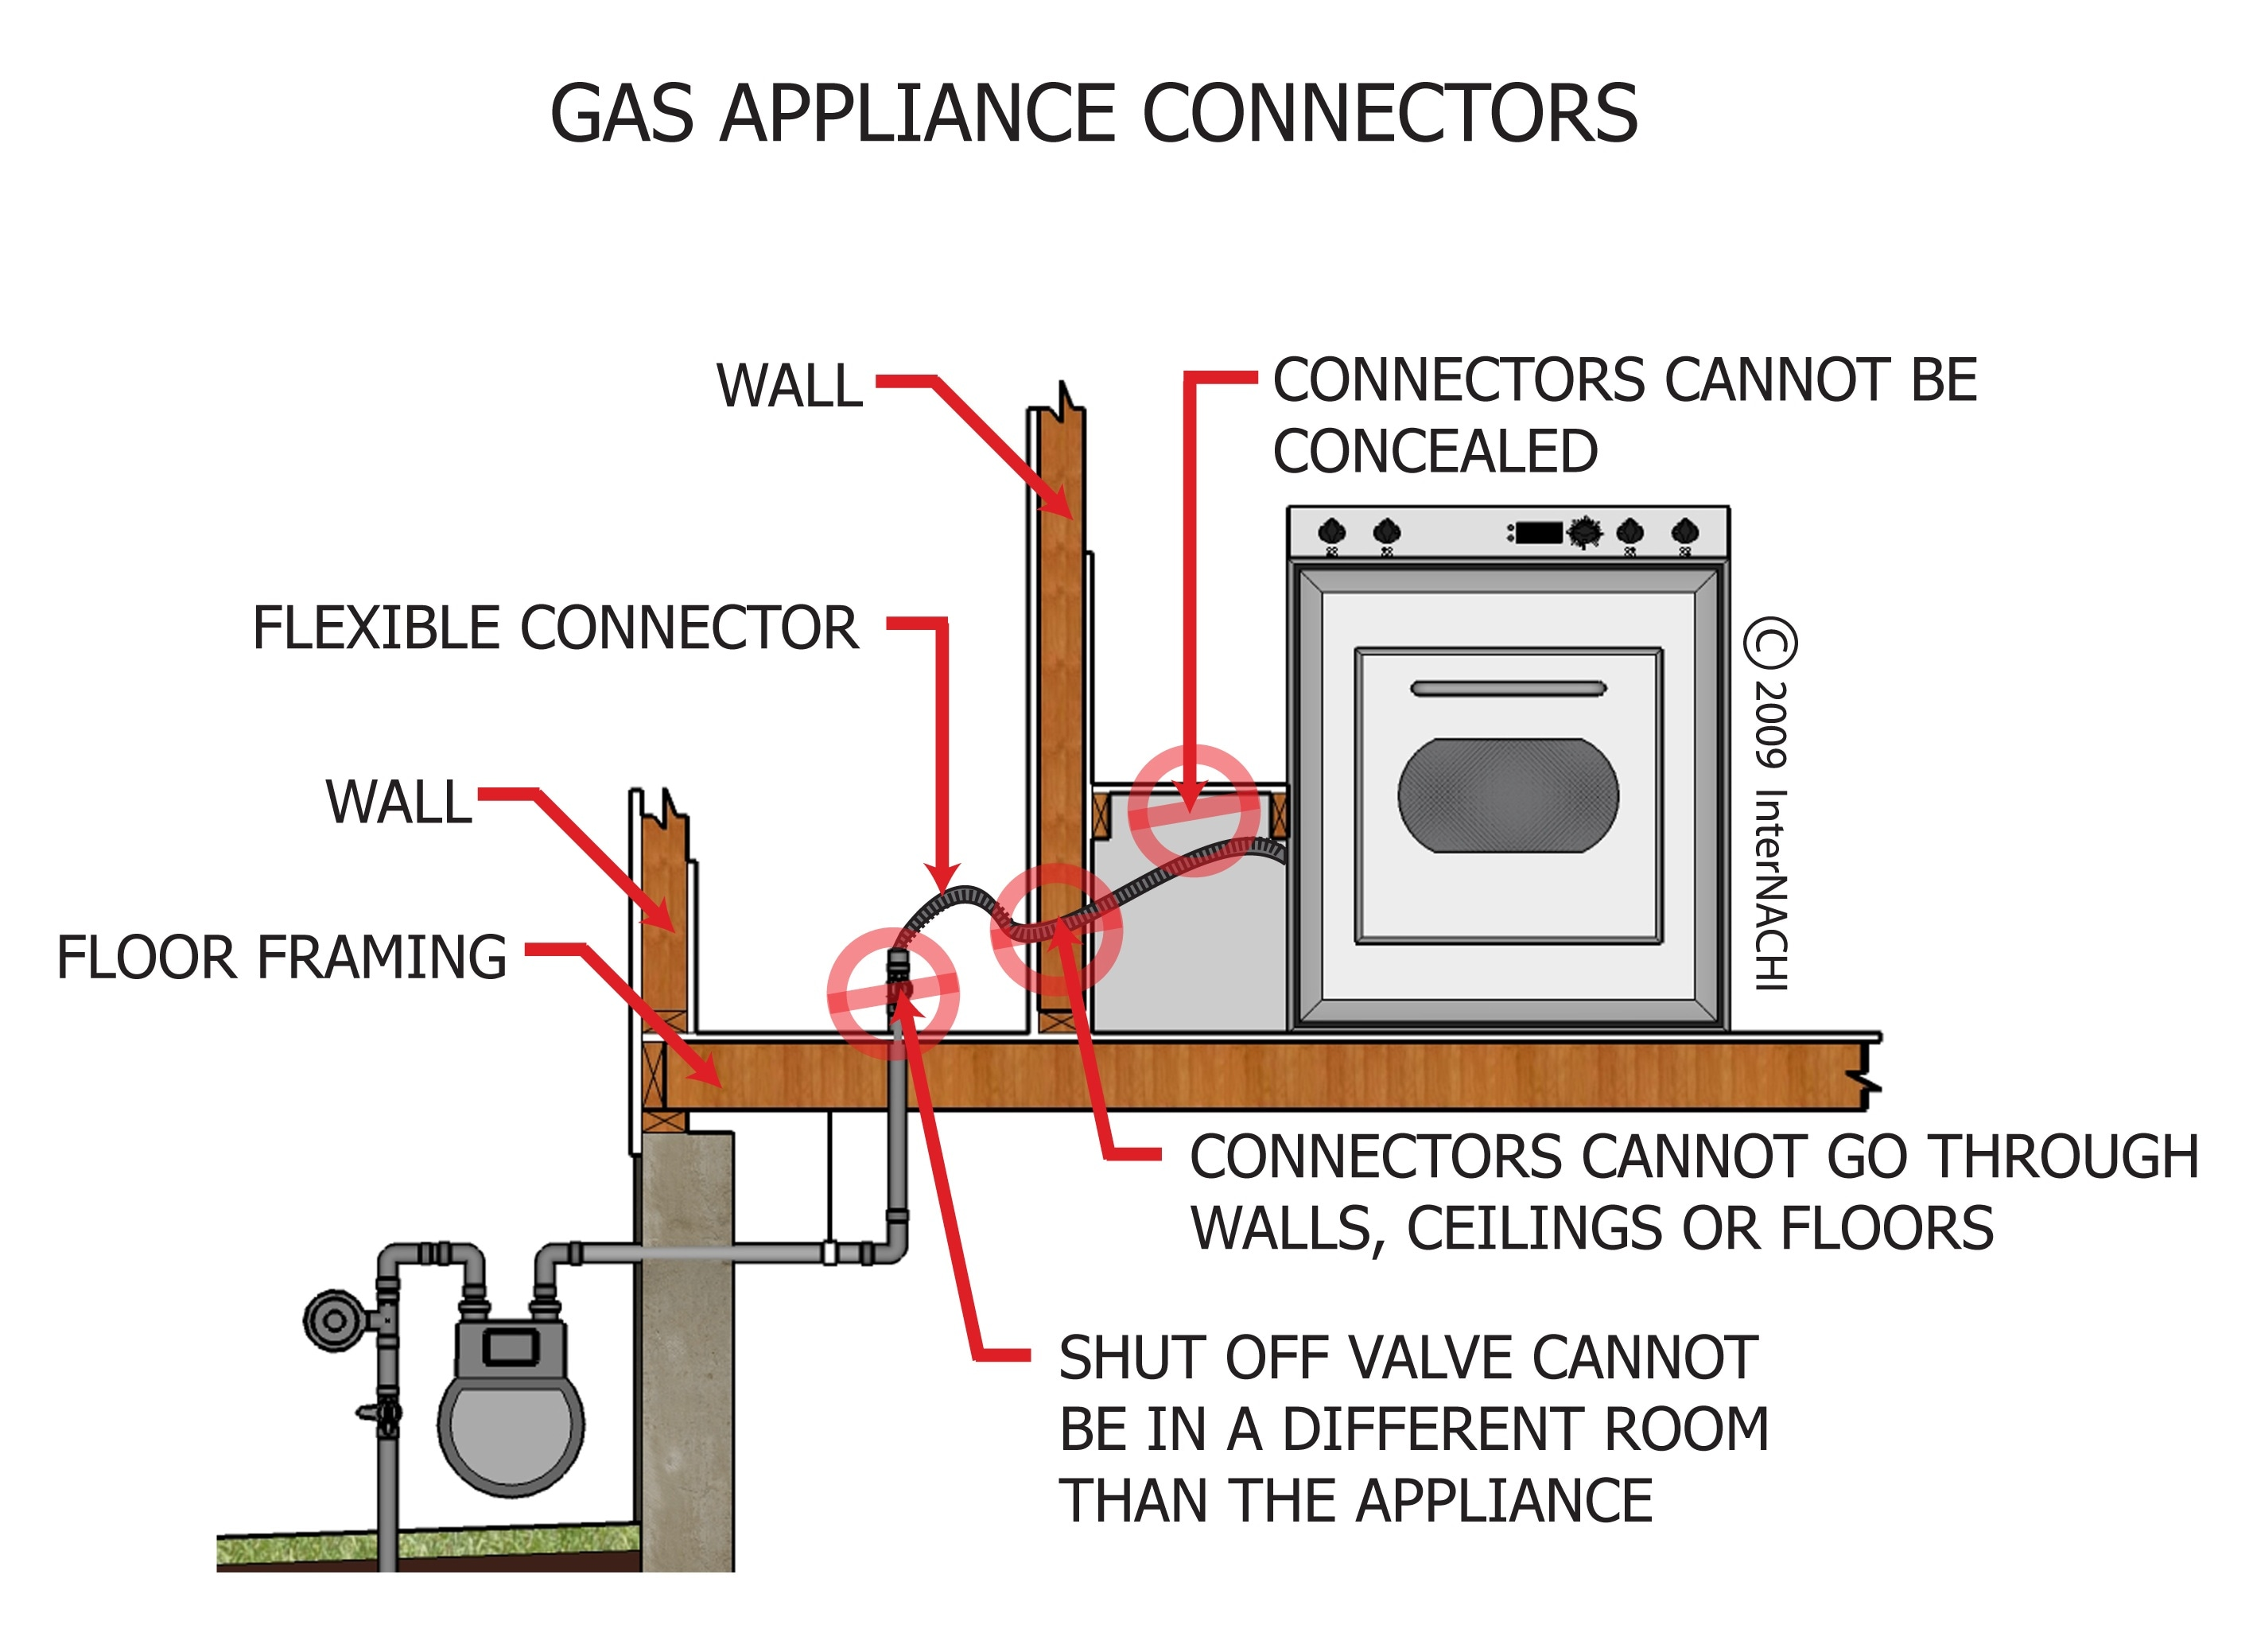 Gas appliance connectors.